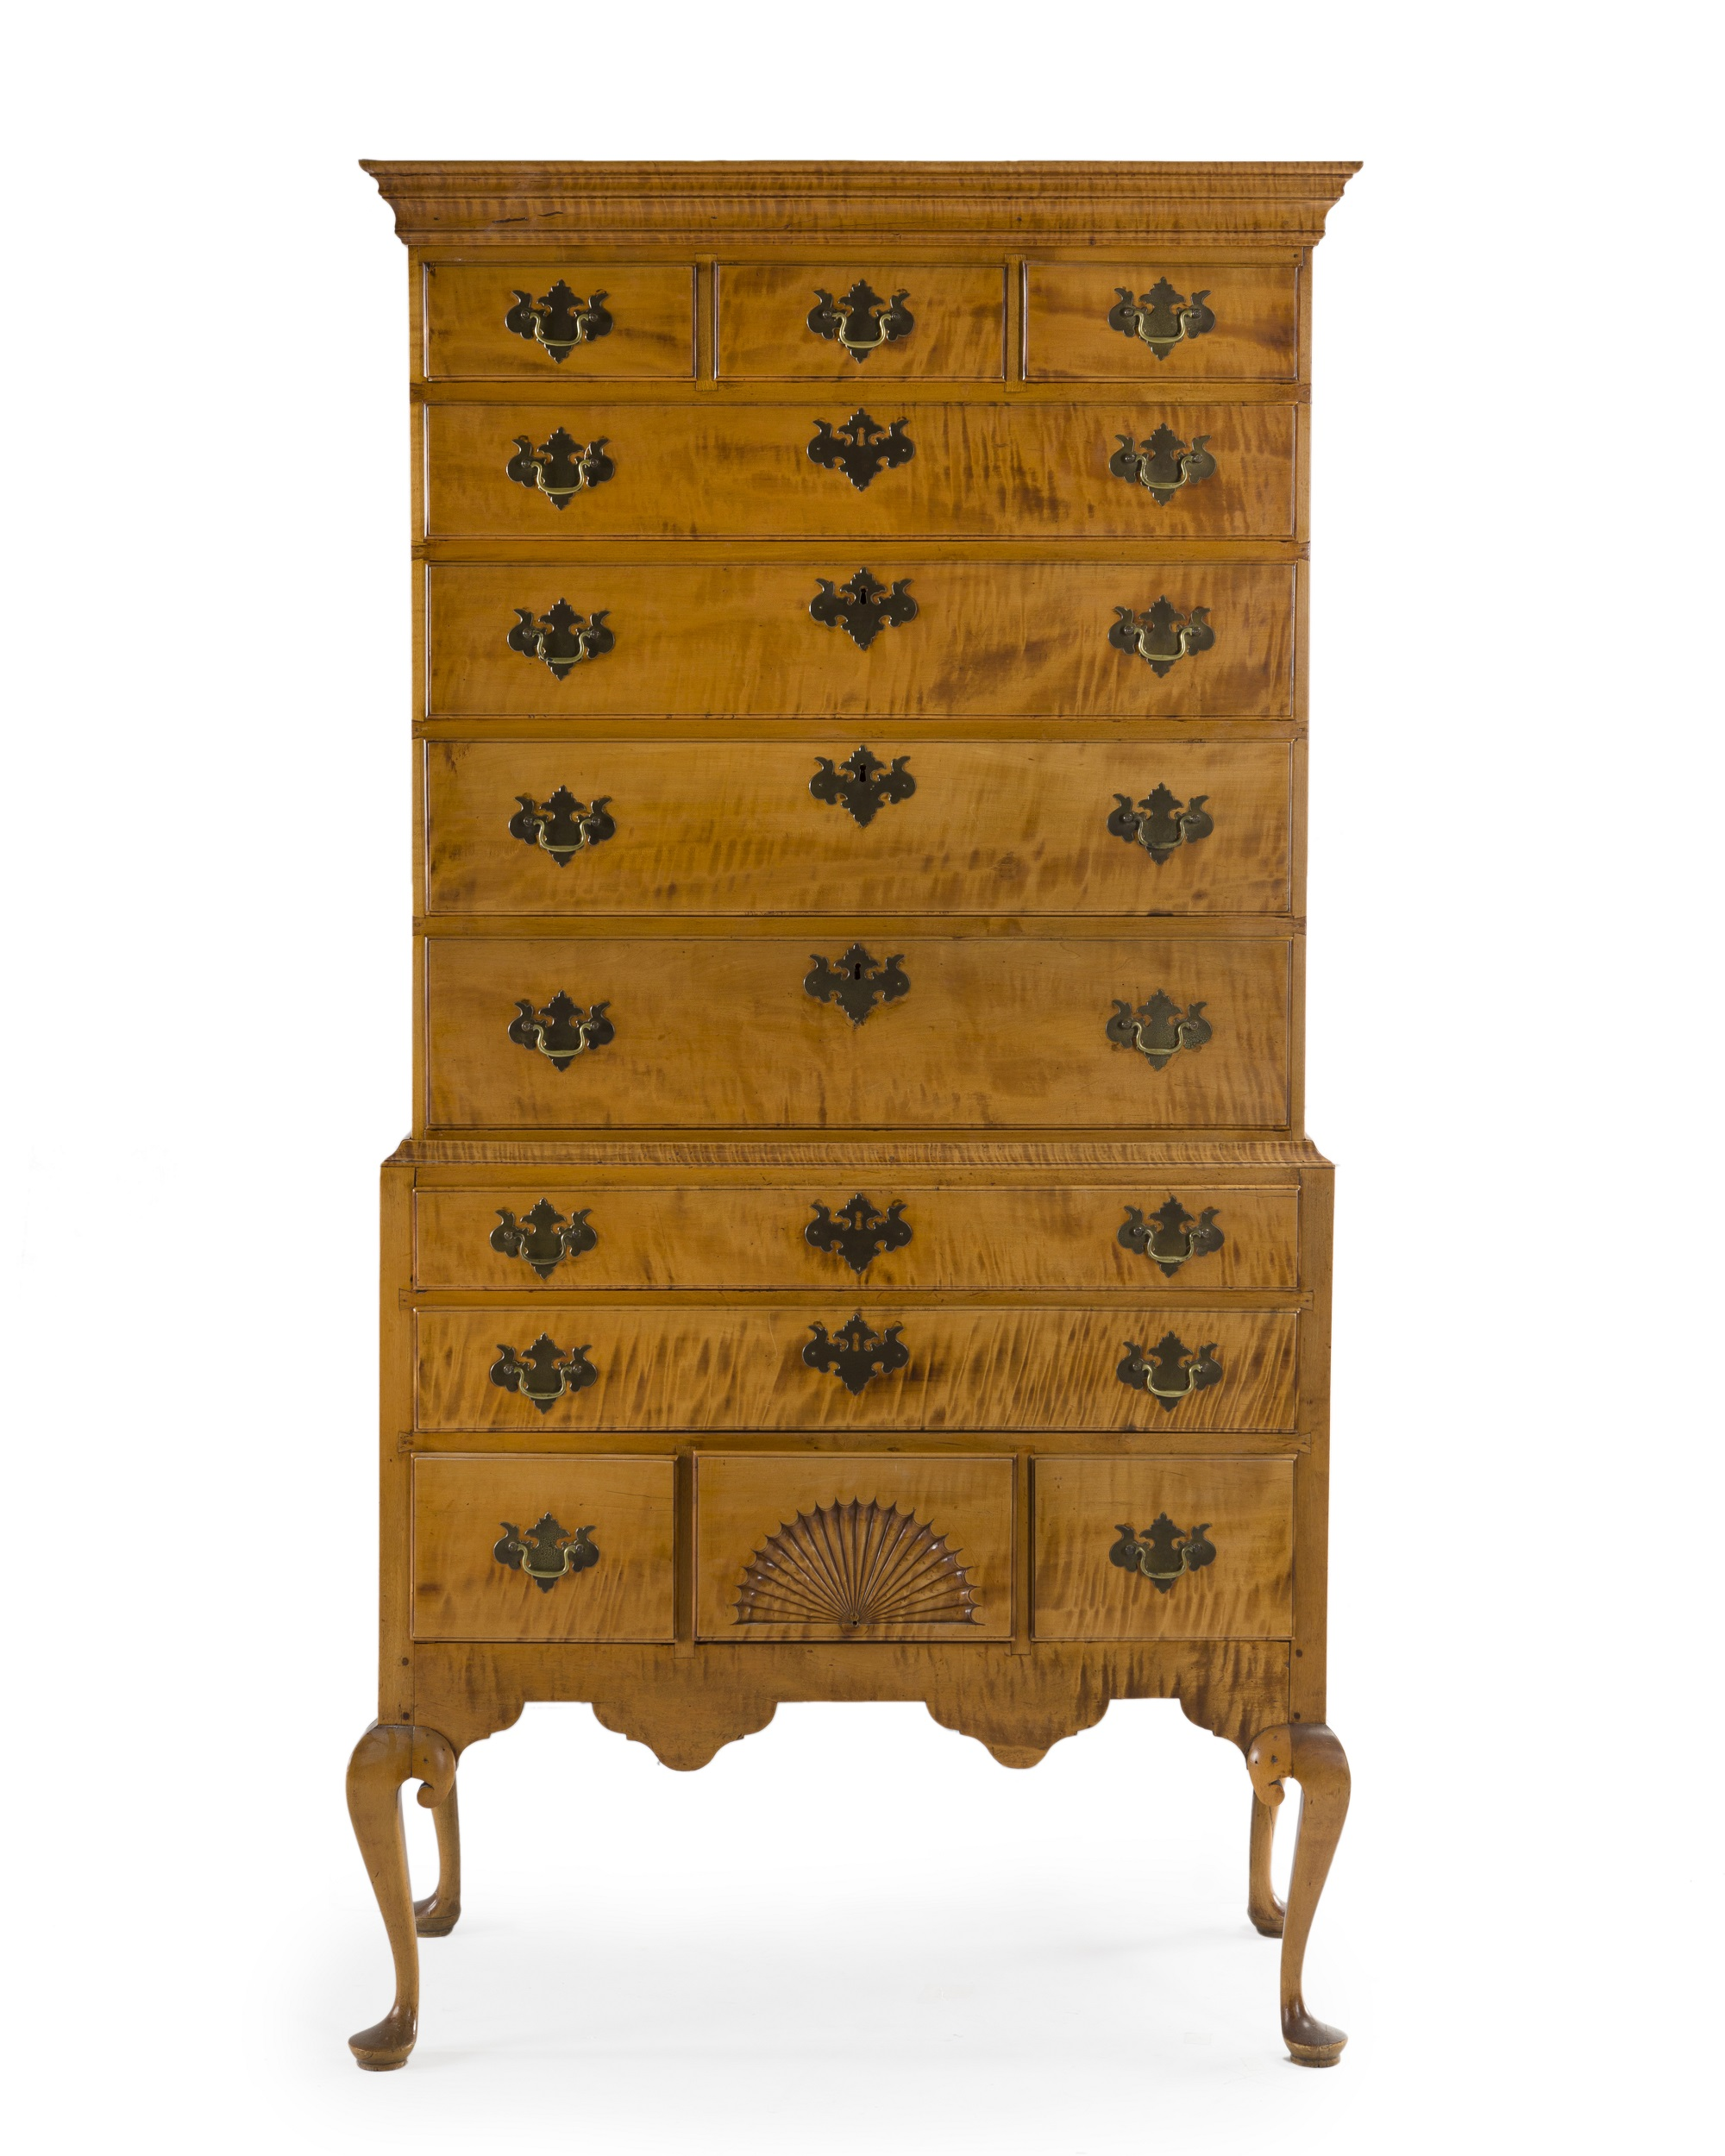 Lot 291, An American tiger maple chest on stand, est: $2,000-3,000